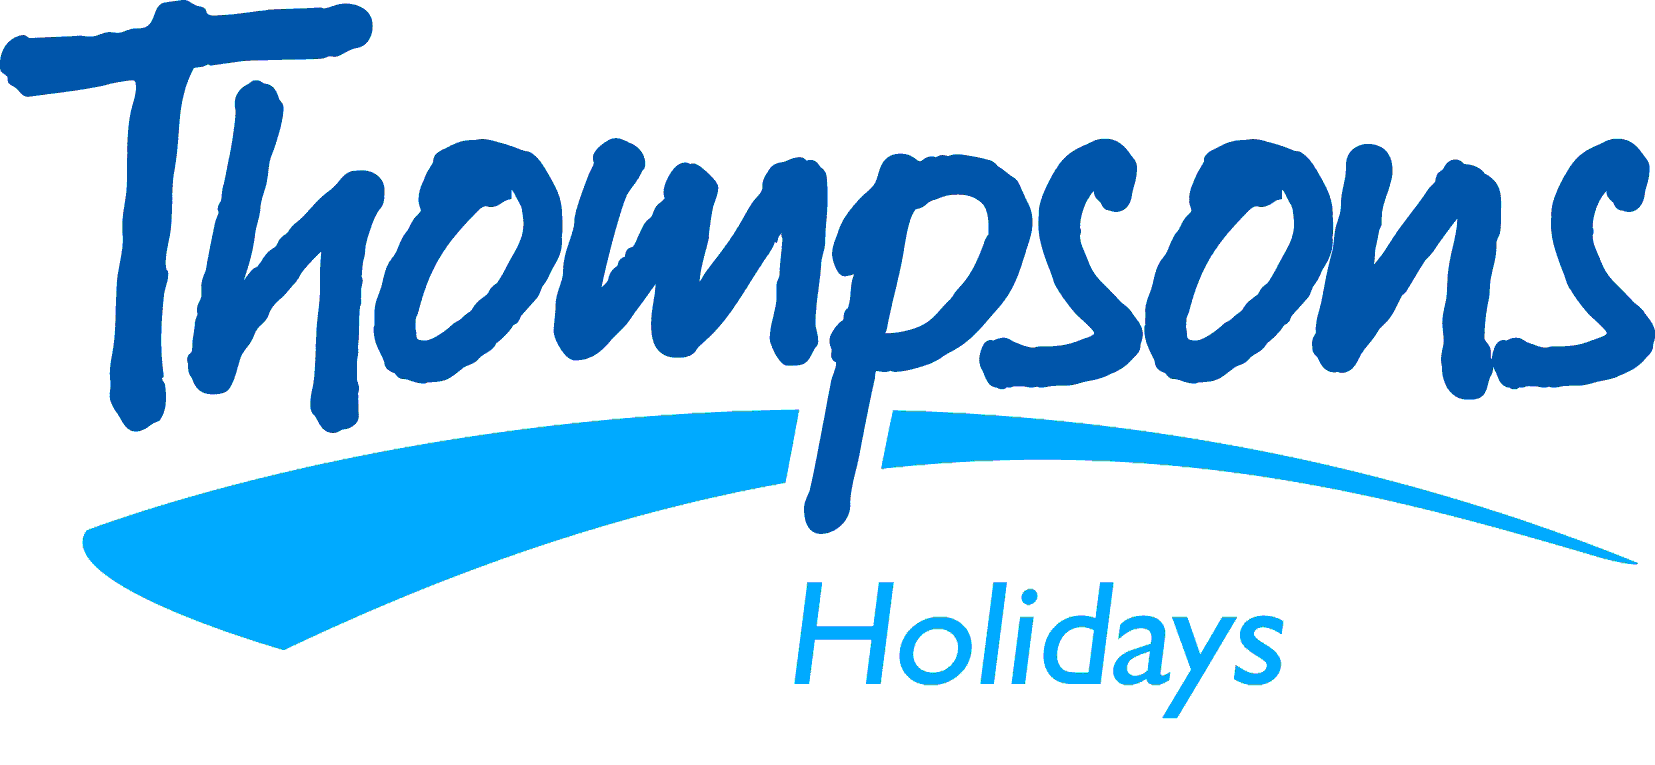 Thompsons Holidays Png 5581